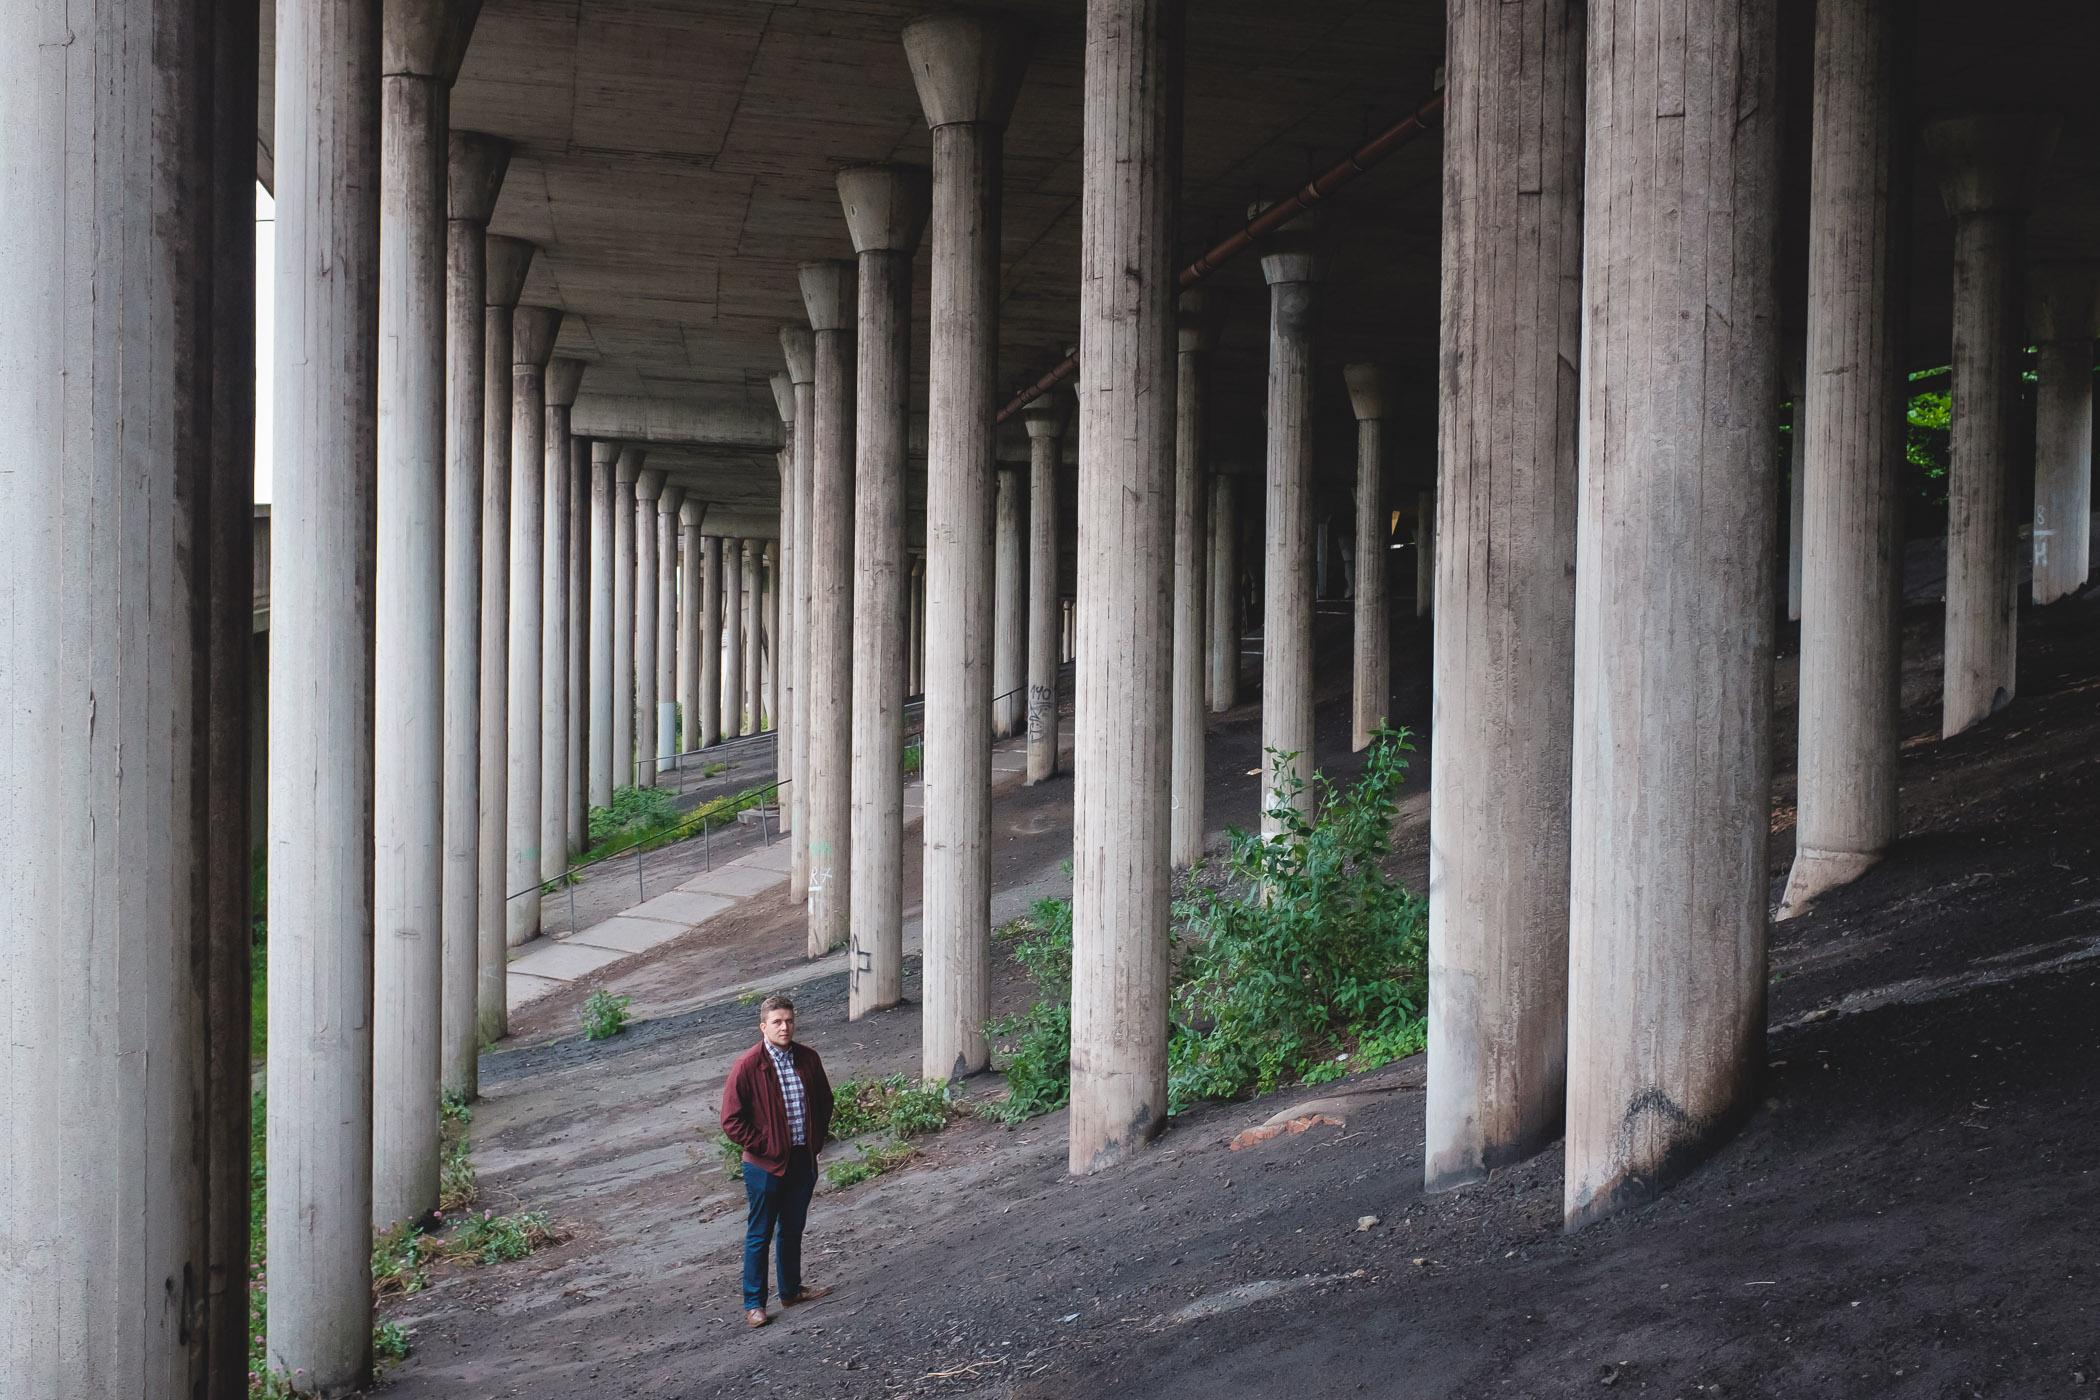 Josh Reed spent the first few years of his life living with his family on Llewellyn street. The forest of motorway support pillars were a playground for him and his friends. Before the motorway this would have been near the site of one of 3 churches that were demolished.